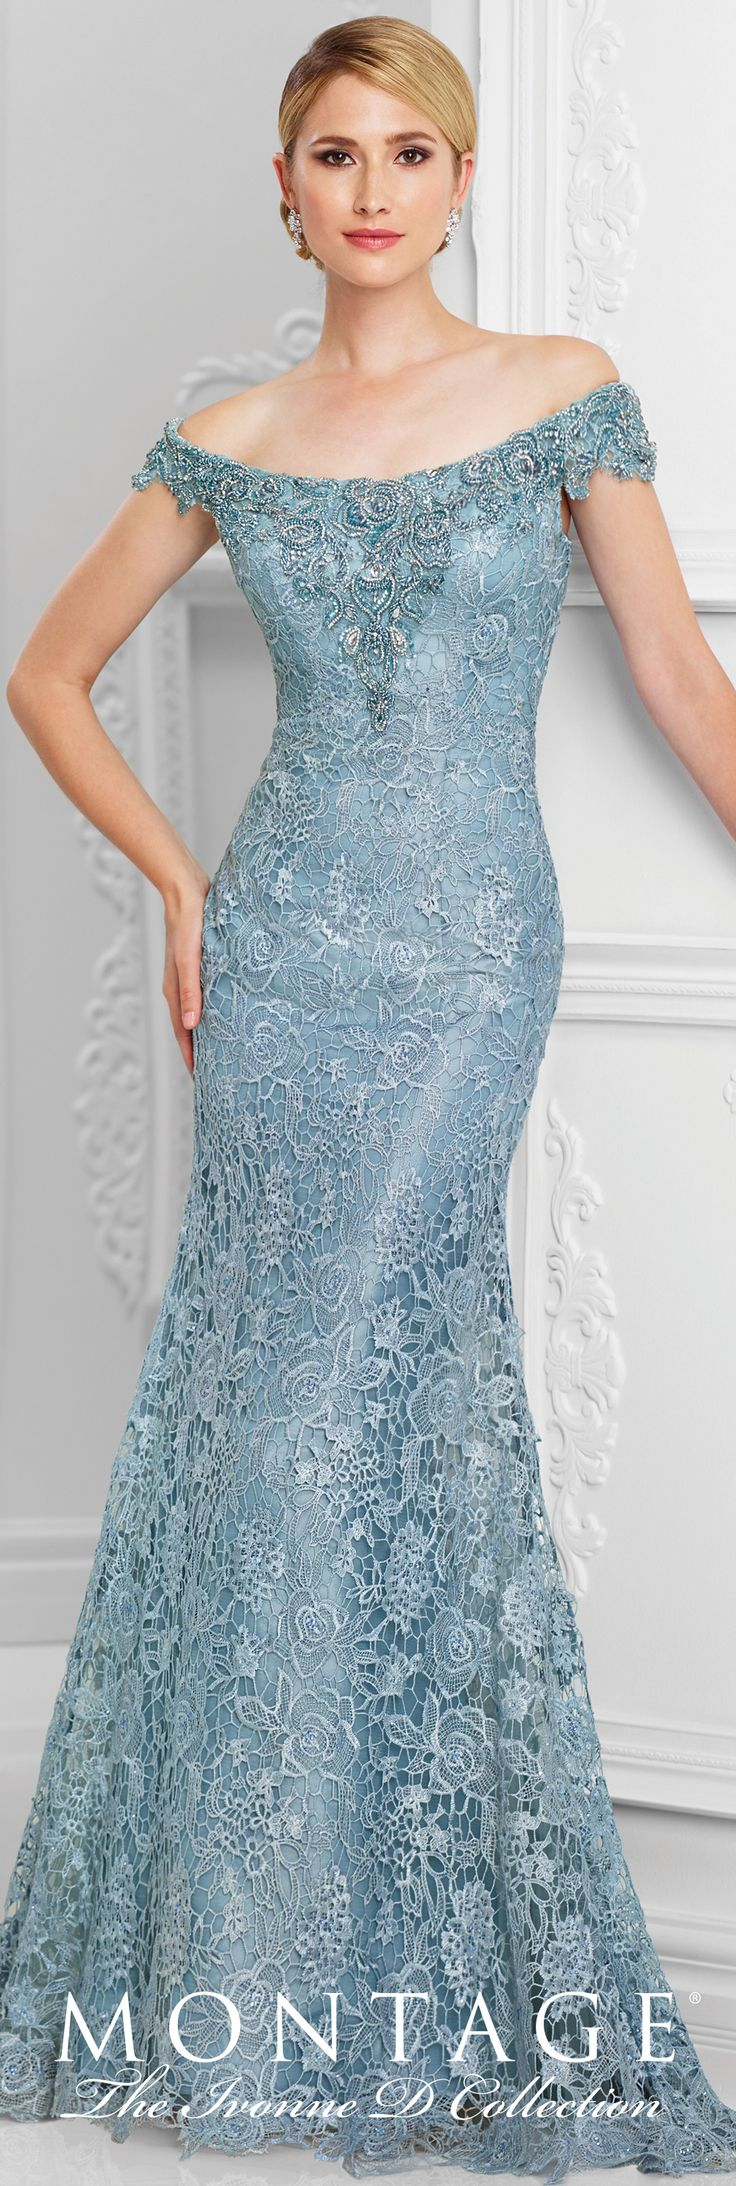 Formal Evening Gowns by Mon Cheri - Spring 2017 - Style No. 117D71 - wedgwood blue tulle and embroidered lace evening dress